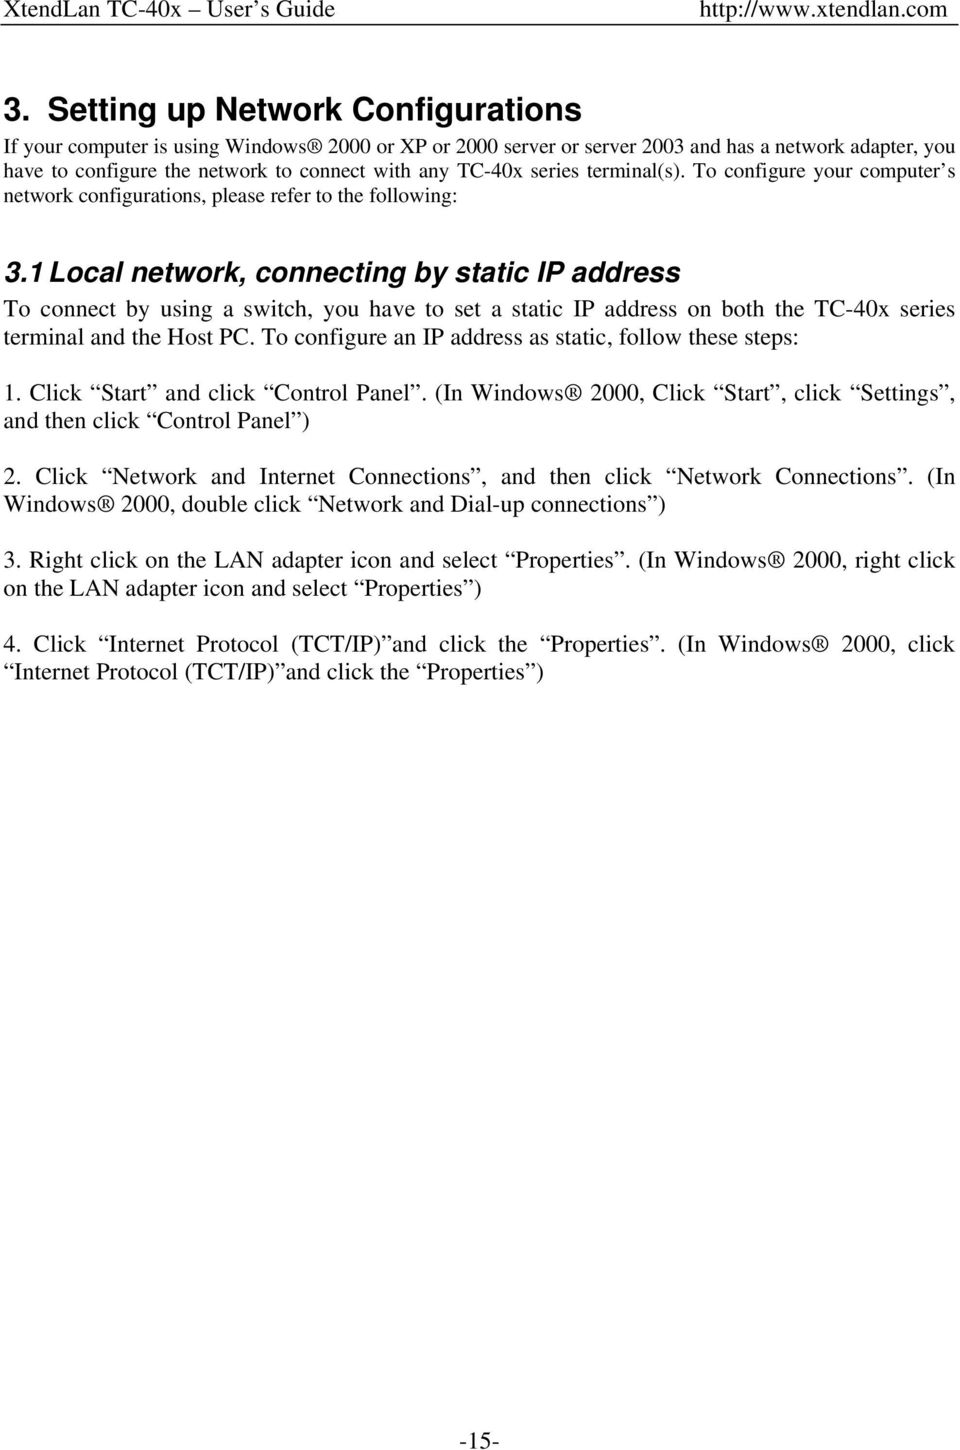 1 Local network, connecting by static IP address To connect by using a switch, you have to set a static IP address on both the TC-40x series terminal and the Host PC.